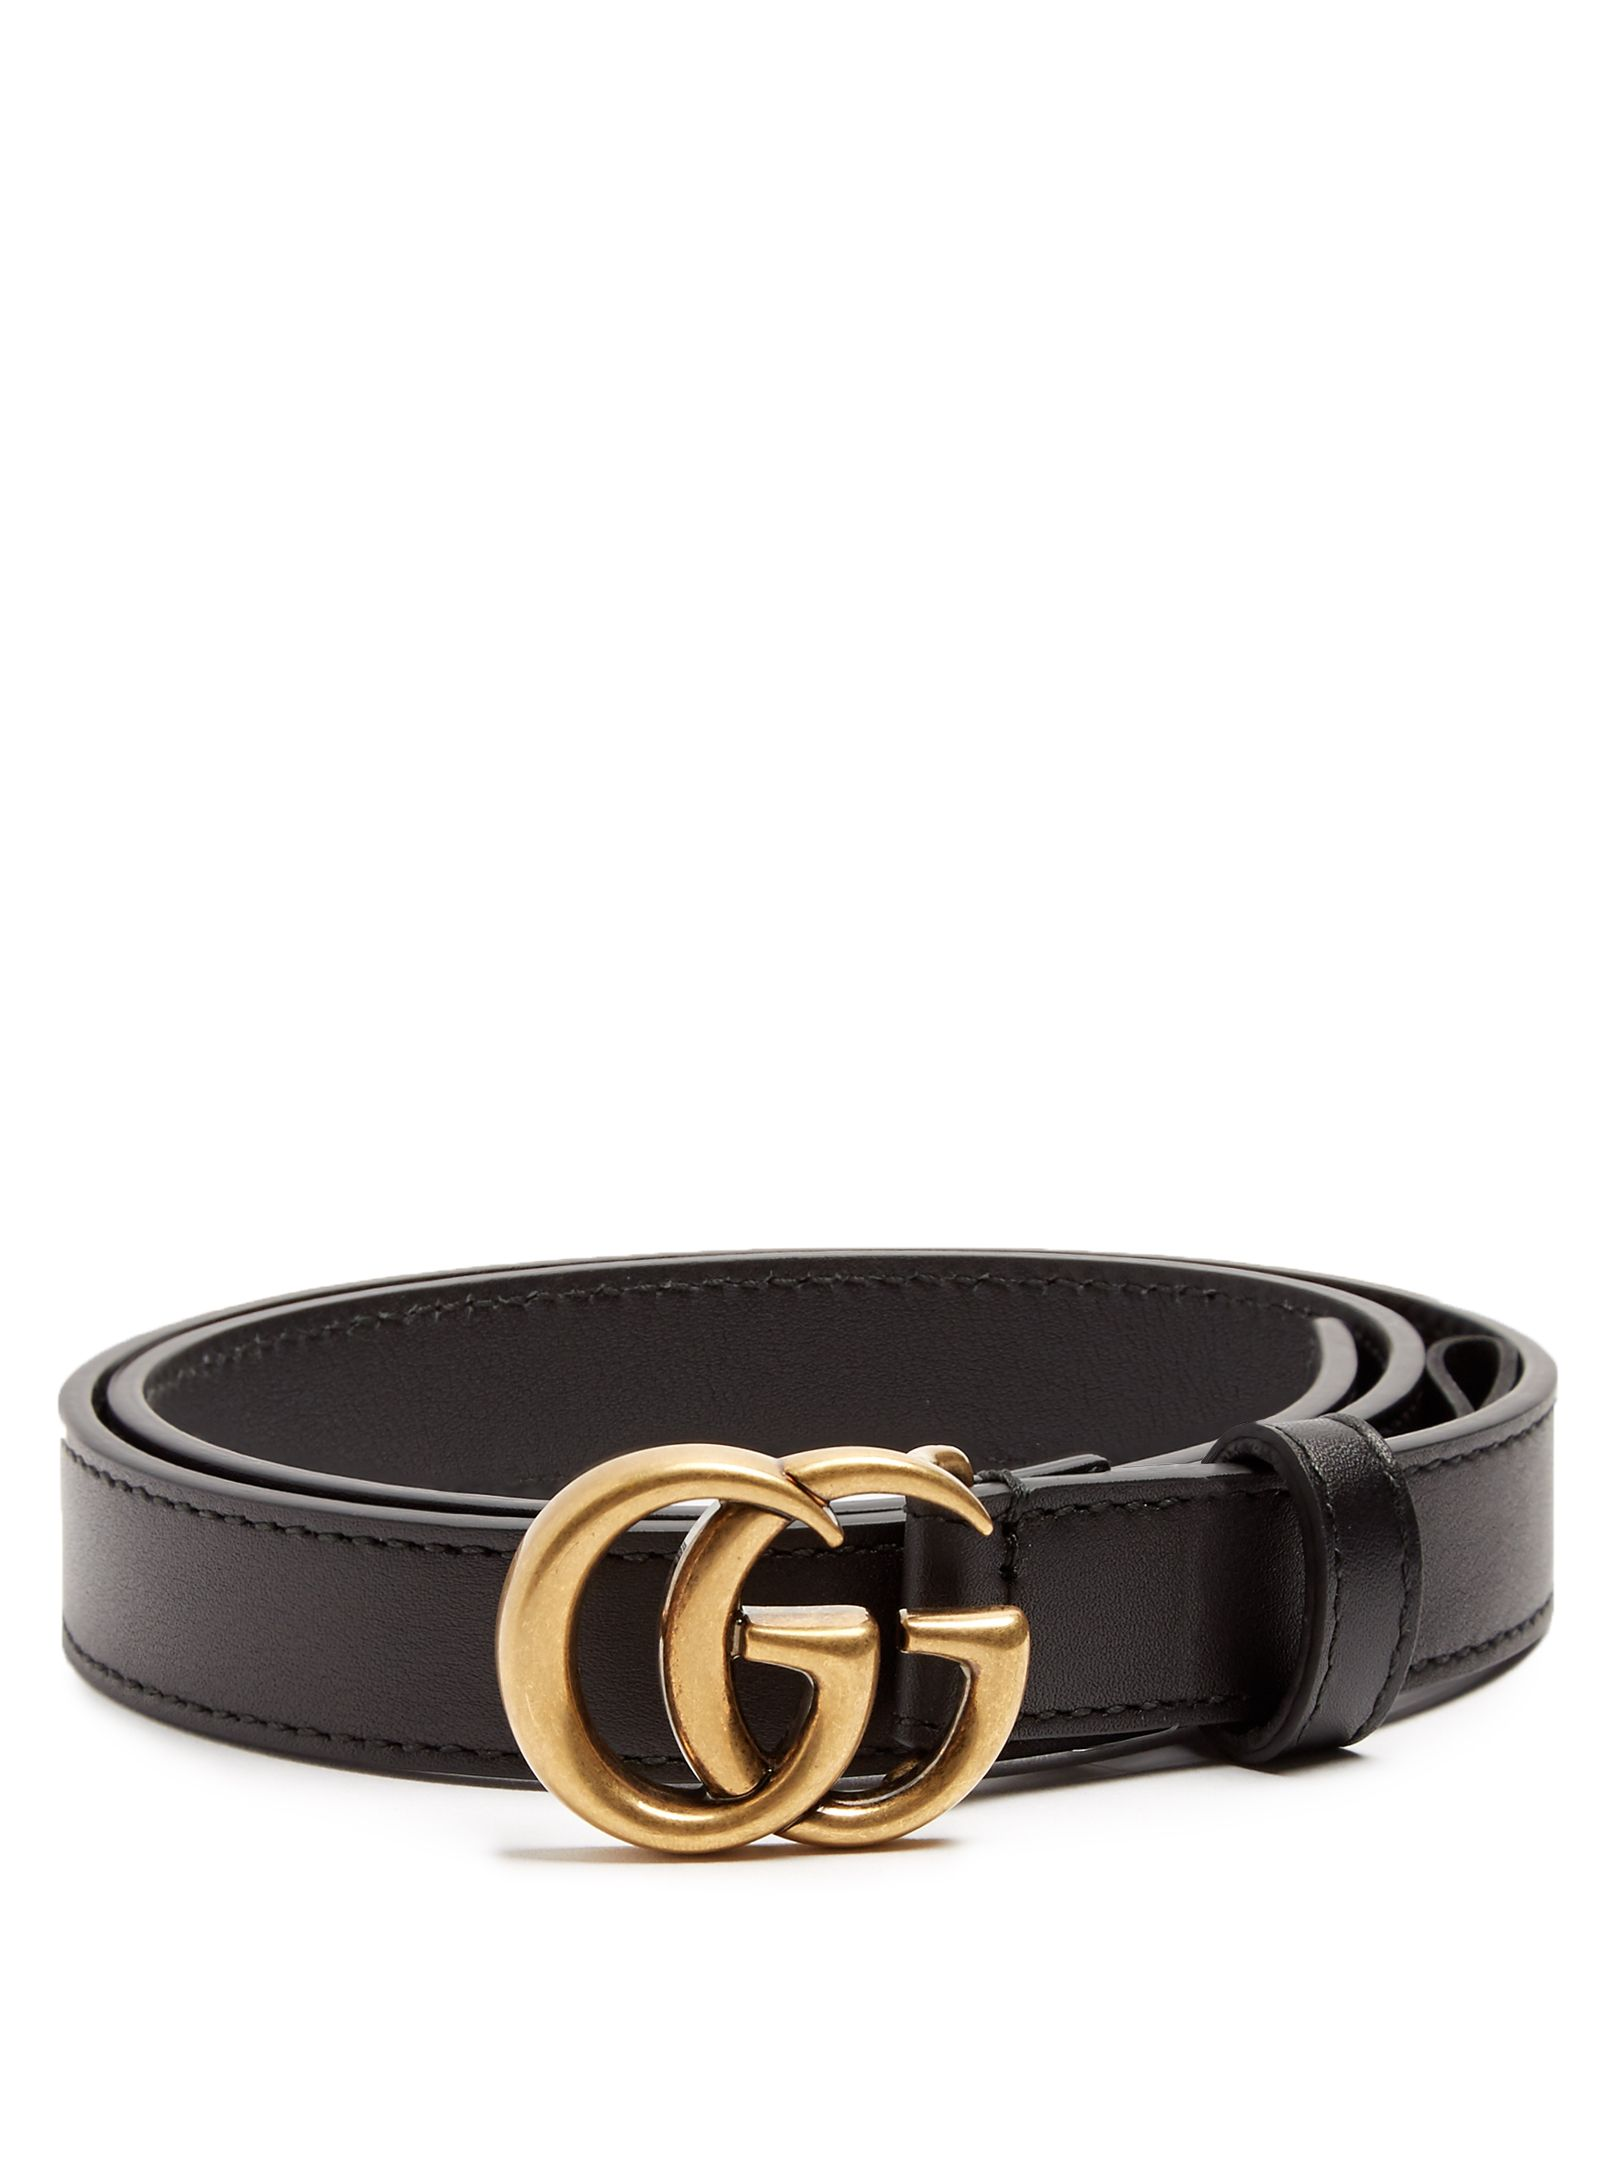 46571c346 Click here to buy Gucci GG-logo 2cm leather belt at MATCHESFASHION.COM